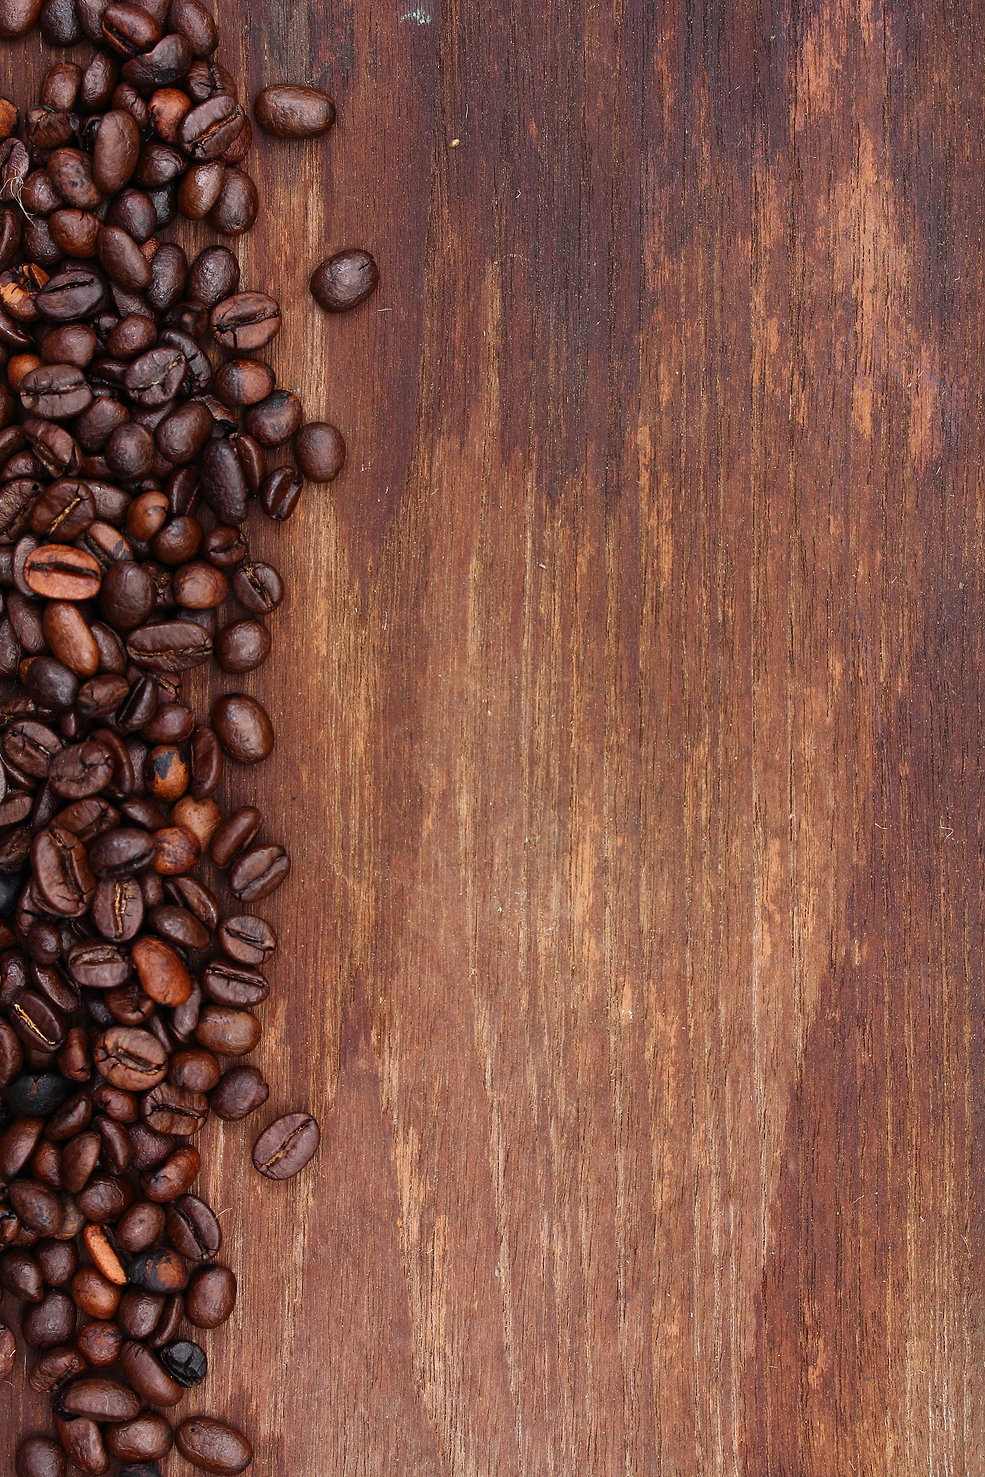 Coffee%20beans%20on%20wood%20background_